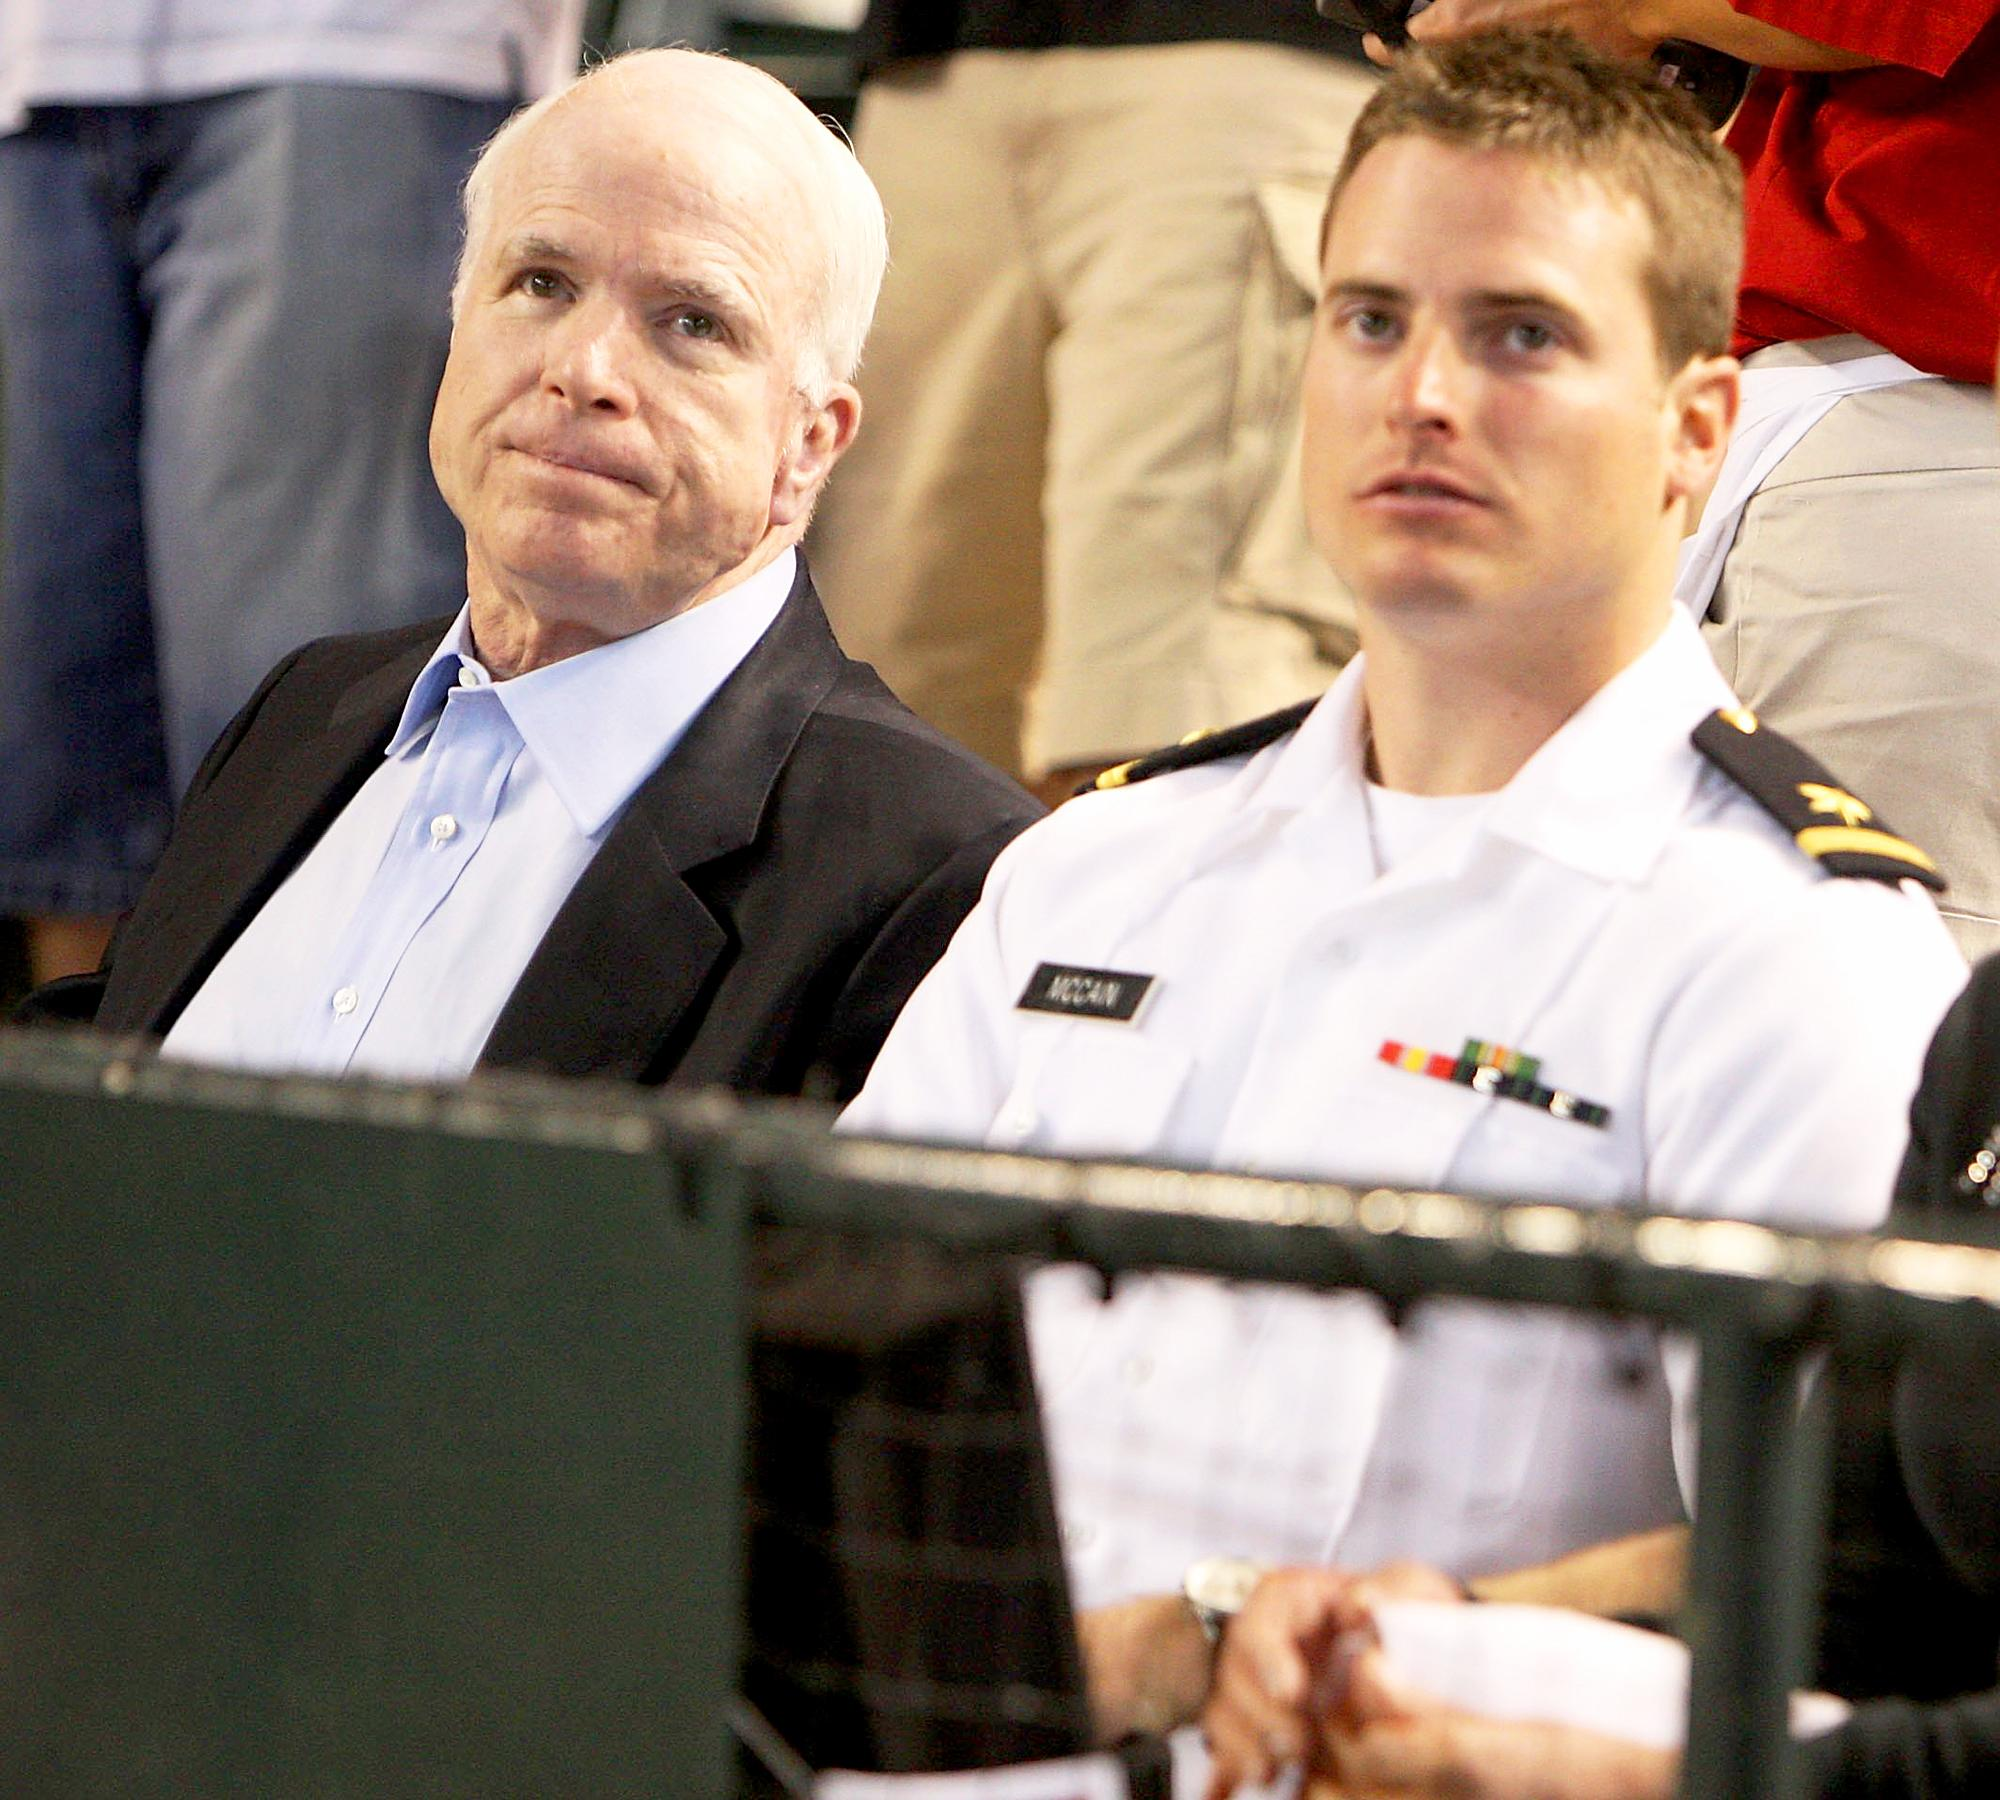 Jack Mccain: John McCain's Son Had The Perfect Response To Racists Who